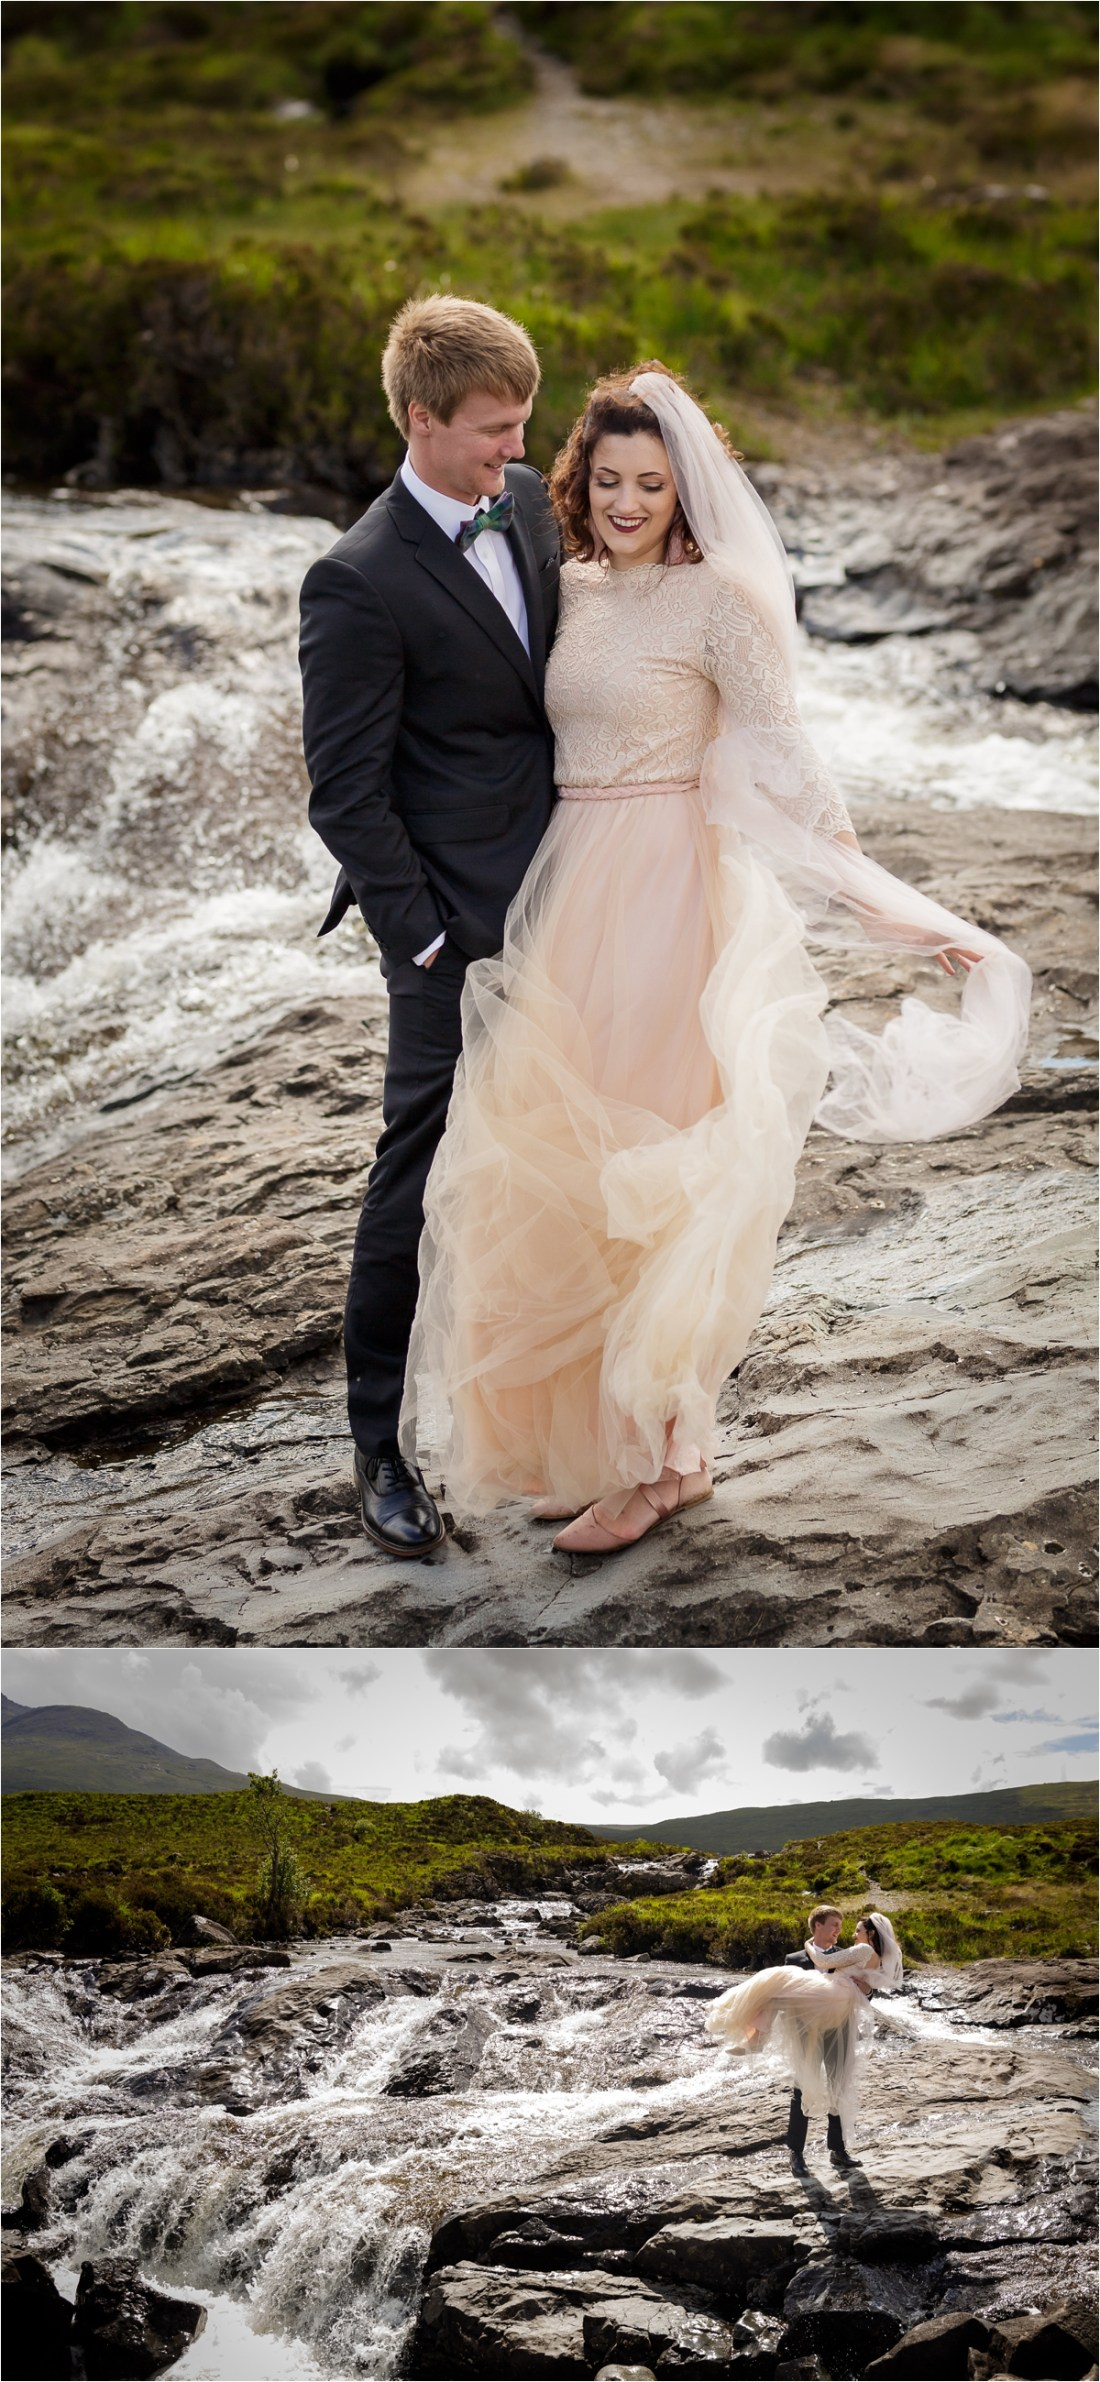 Wedding portraits by a waterfall on the Isle of Skye by Lynne Kennedy Photography